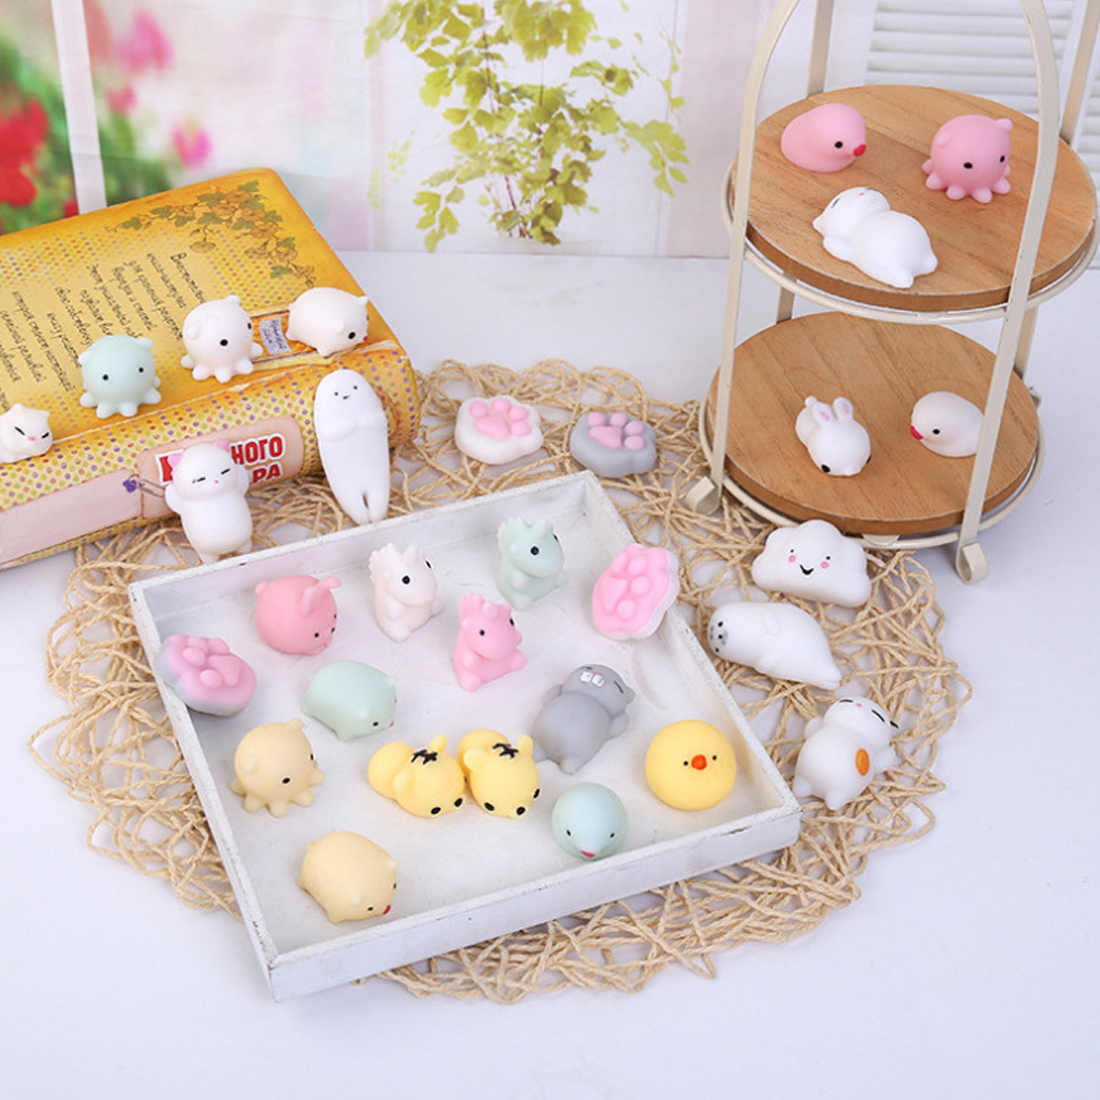 Mobile Phone Accessories Simulation Cat Seal Lazy Cat Phone Straps Slow Rising Soft Press Squeeze Kawaii Bread Cake Kids Toy Phone Accessories Mobile Phone Straps